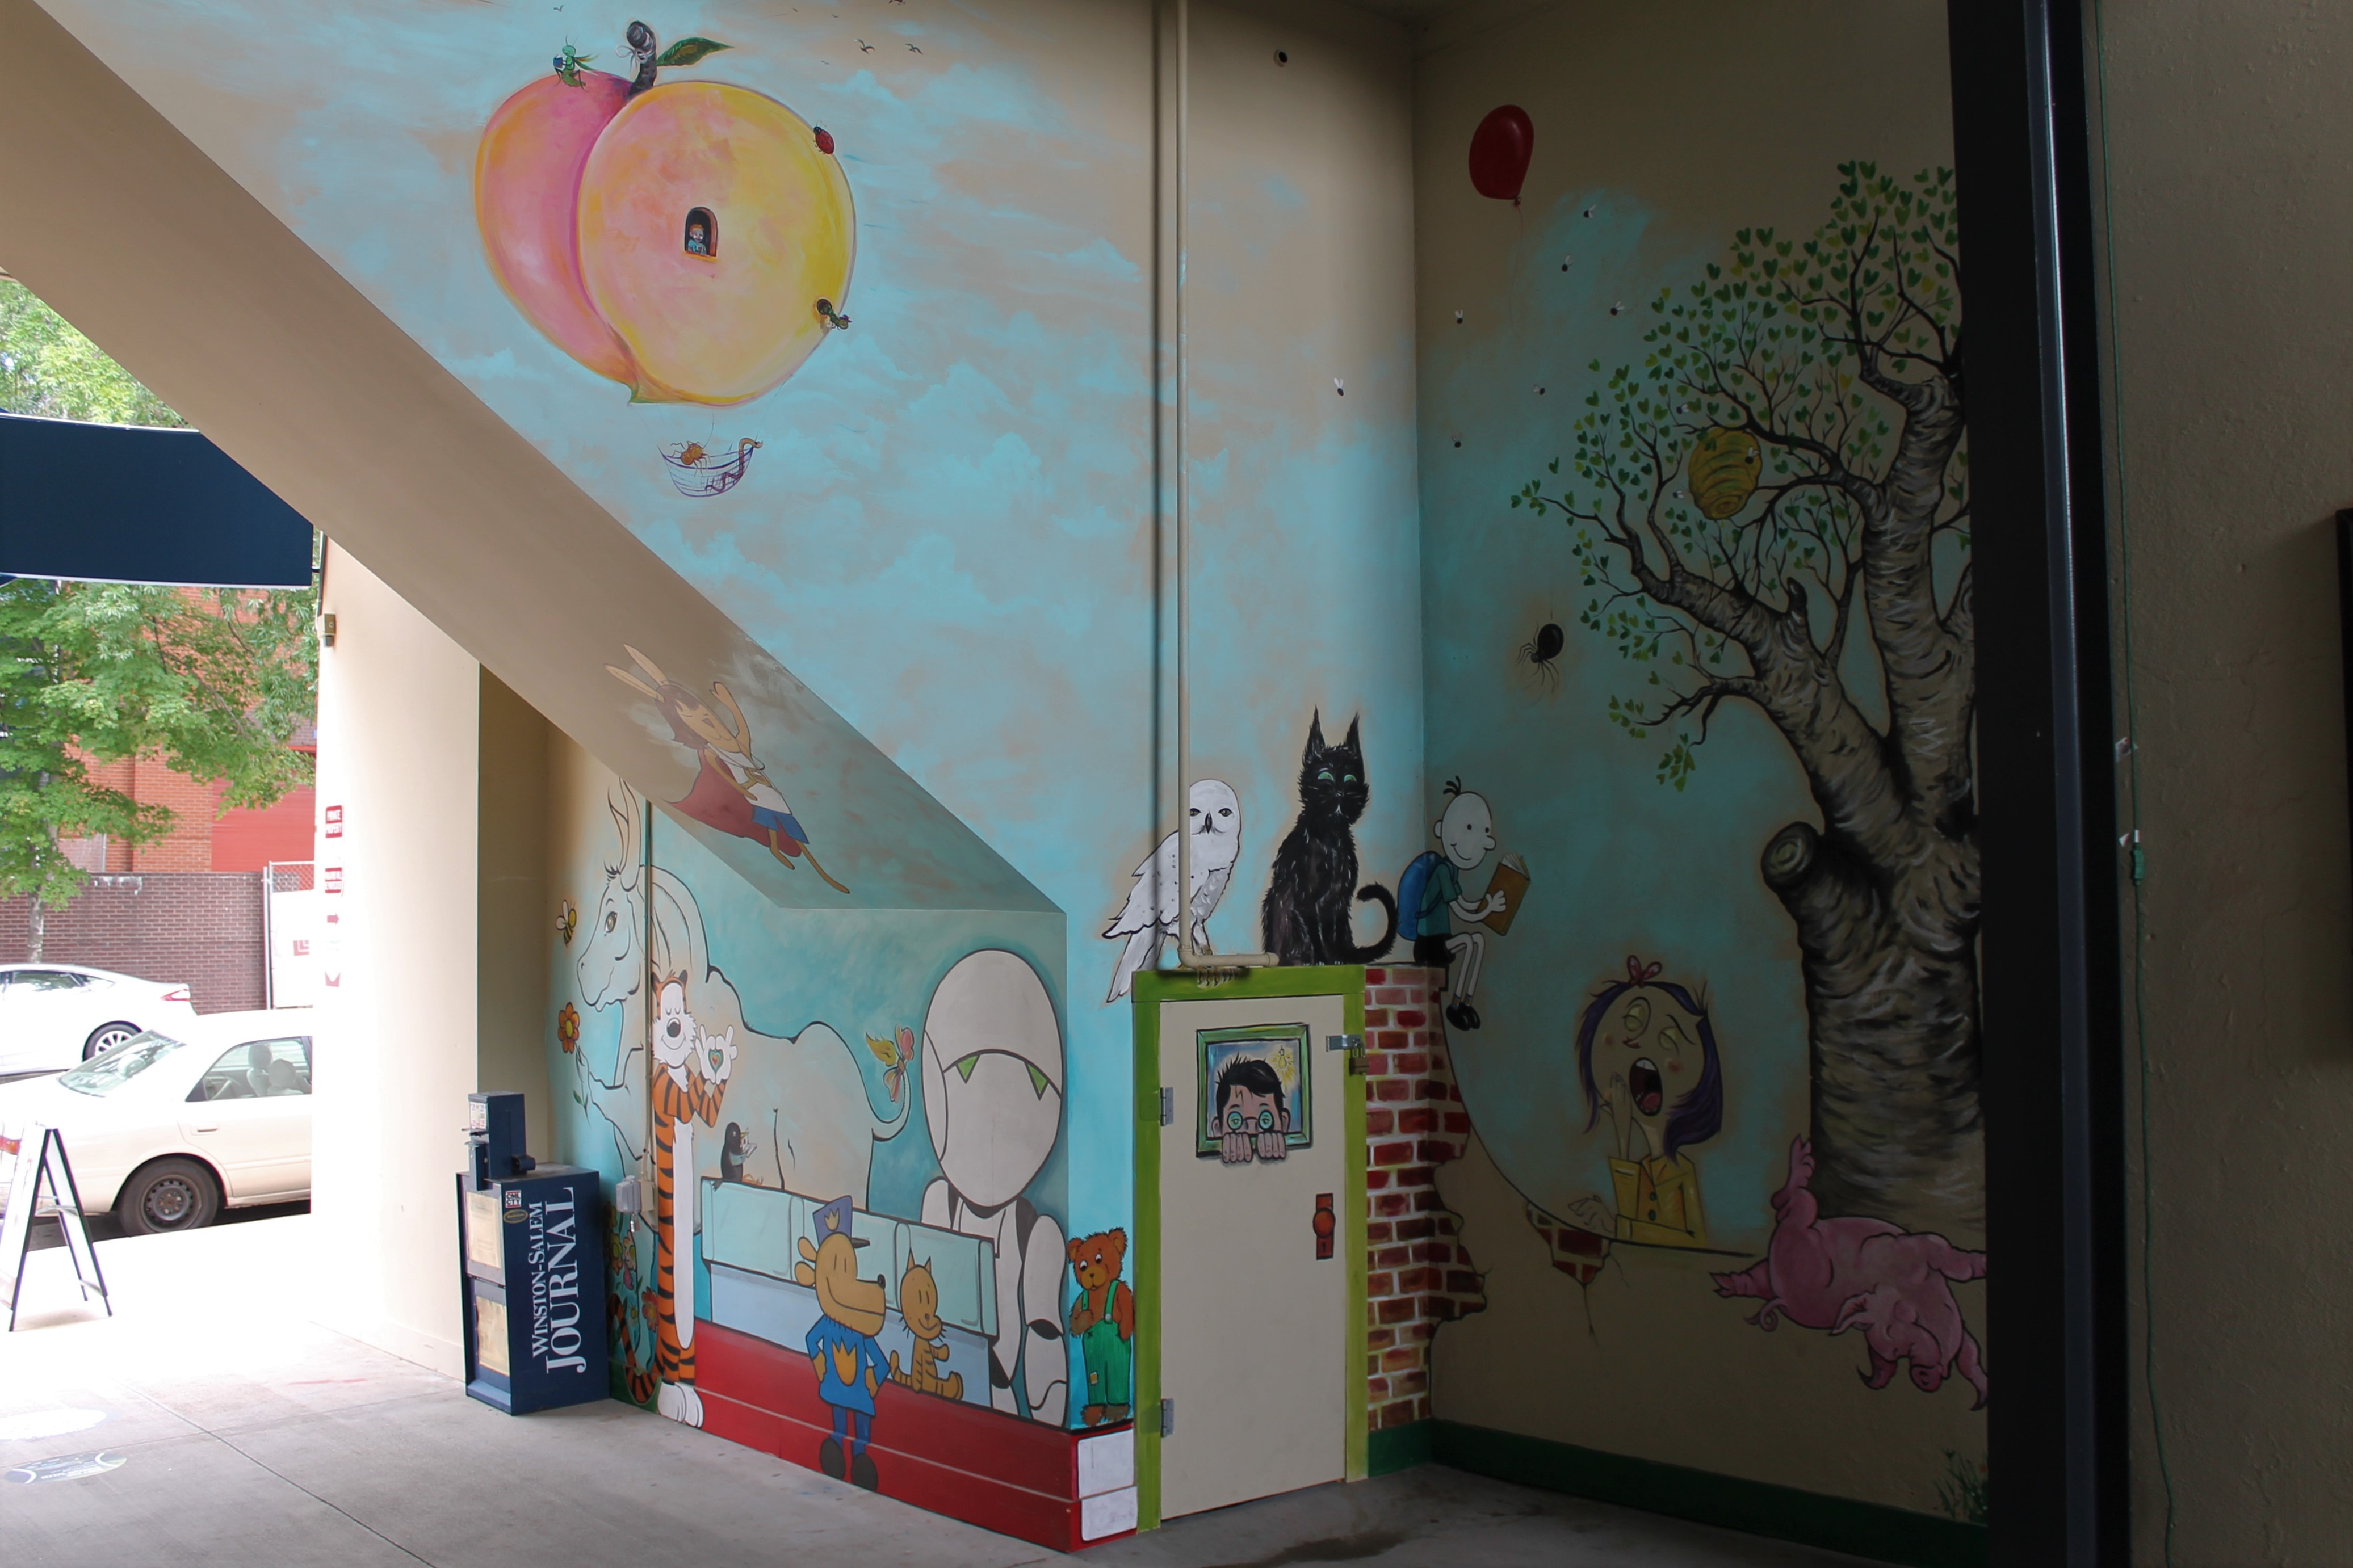 Story book mural with coraline and harrypotter